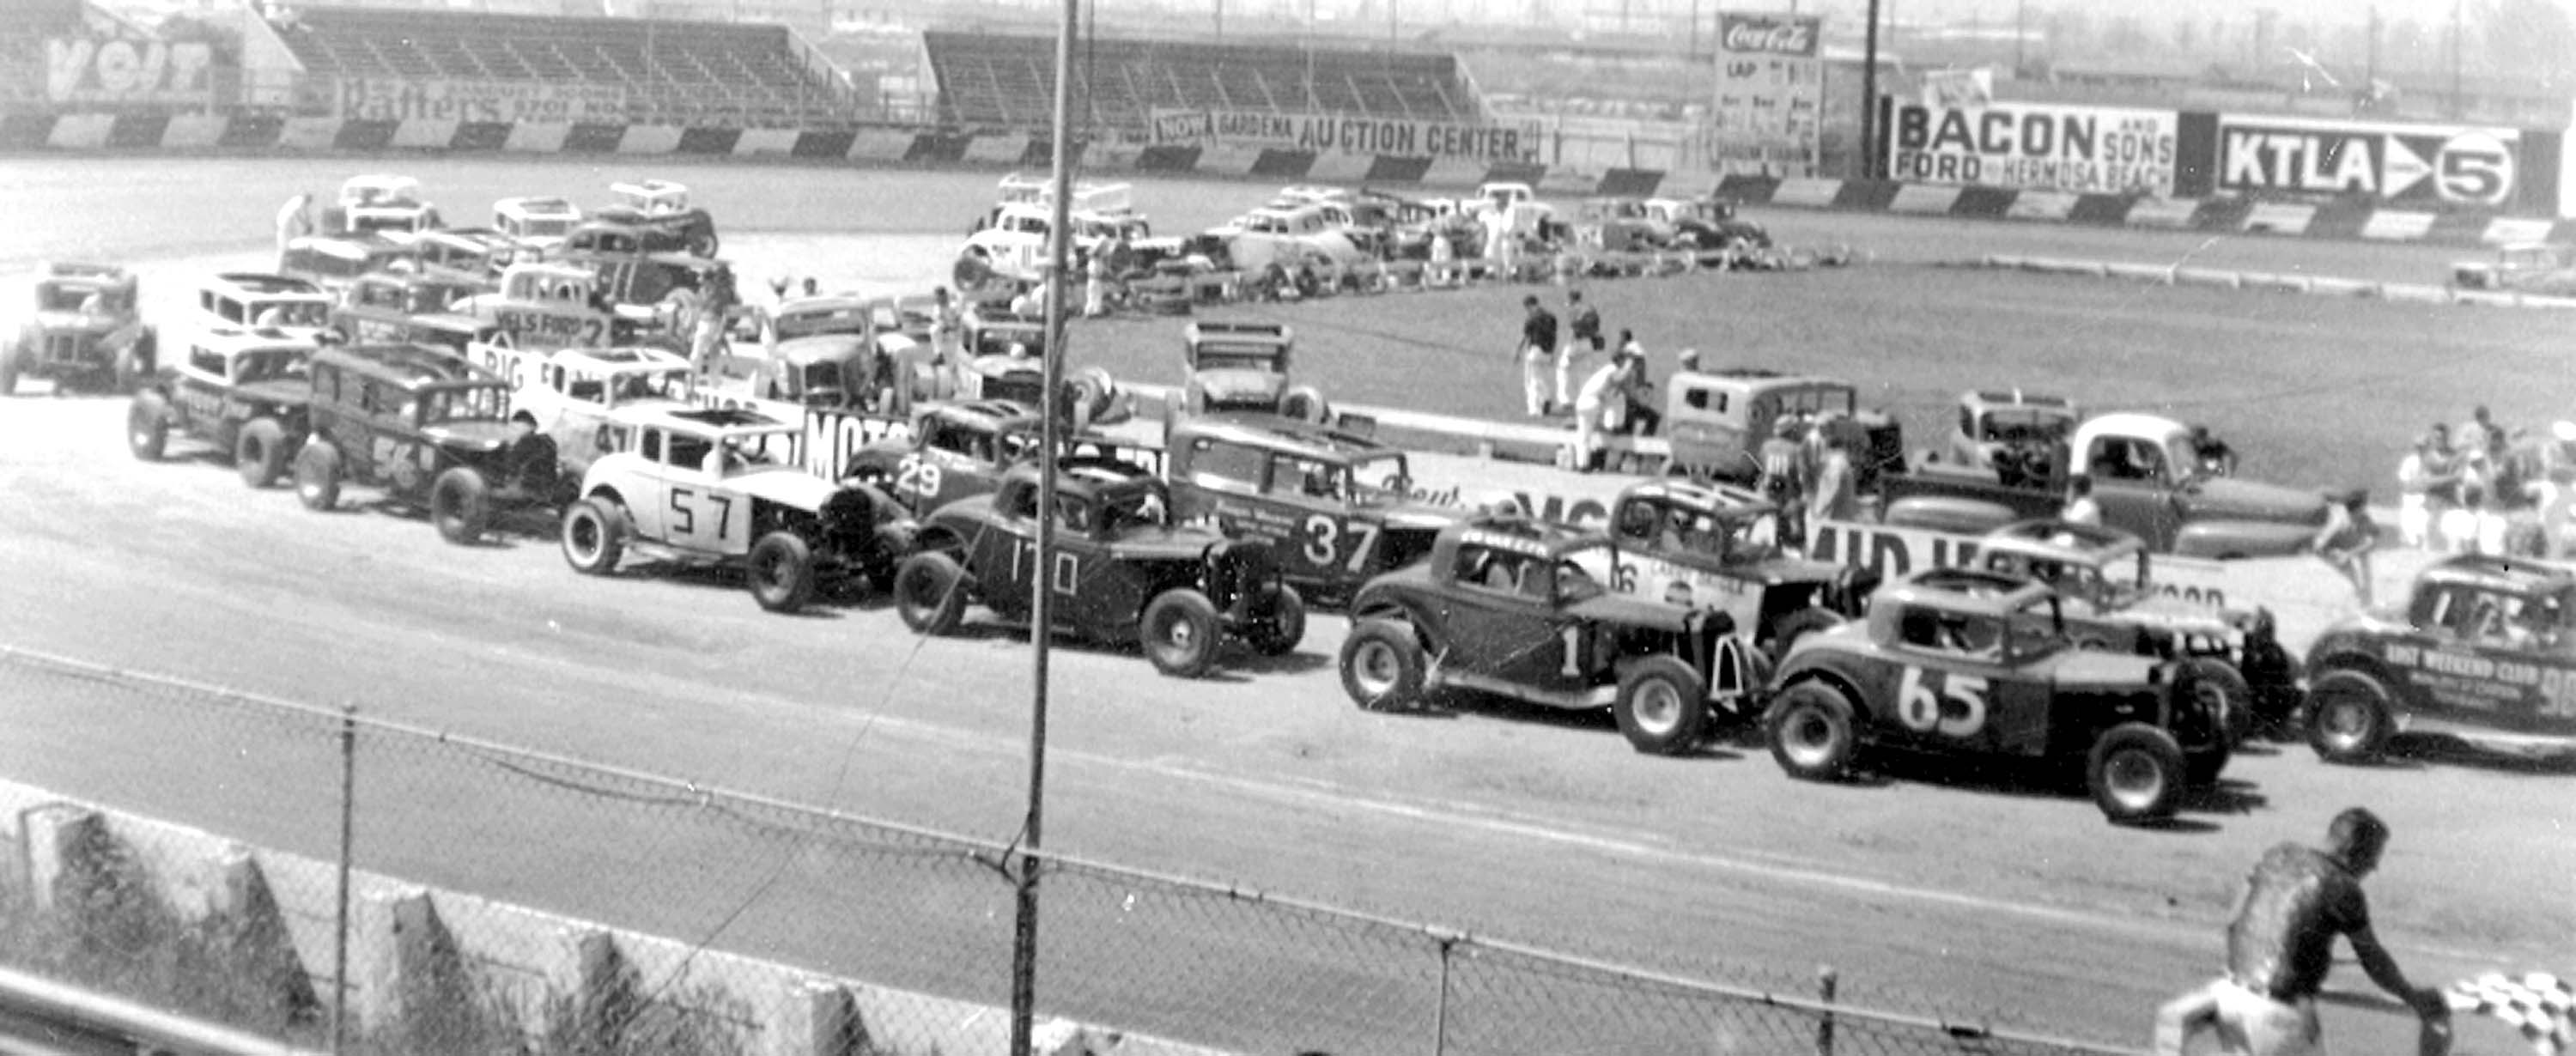 1958-RV1-gs-cars during qualifing-LARGE.jpg